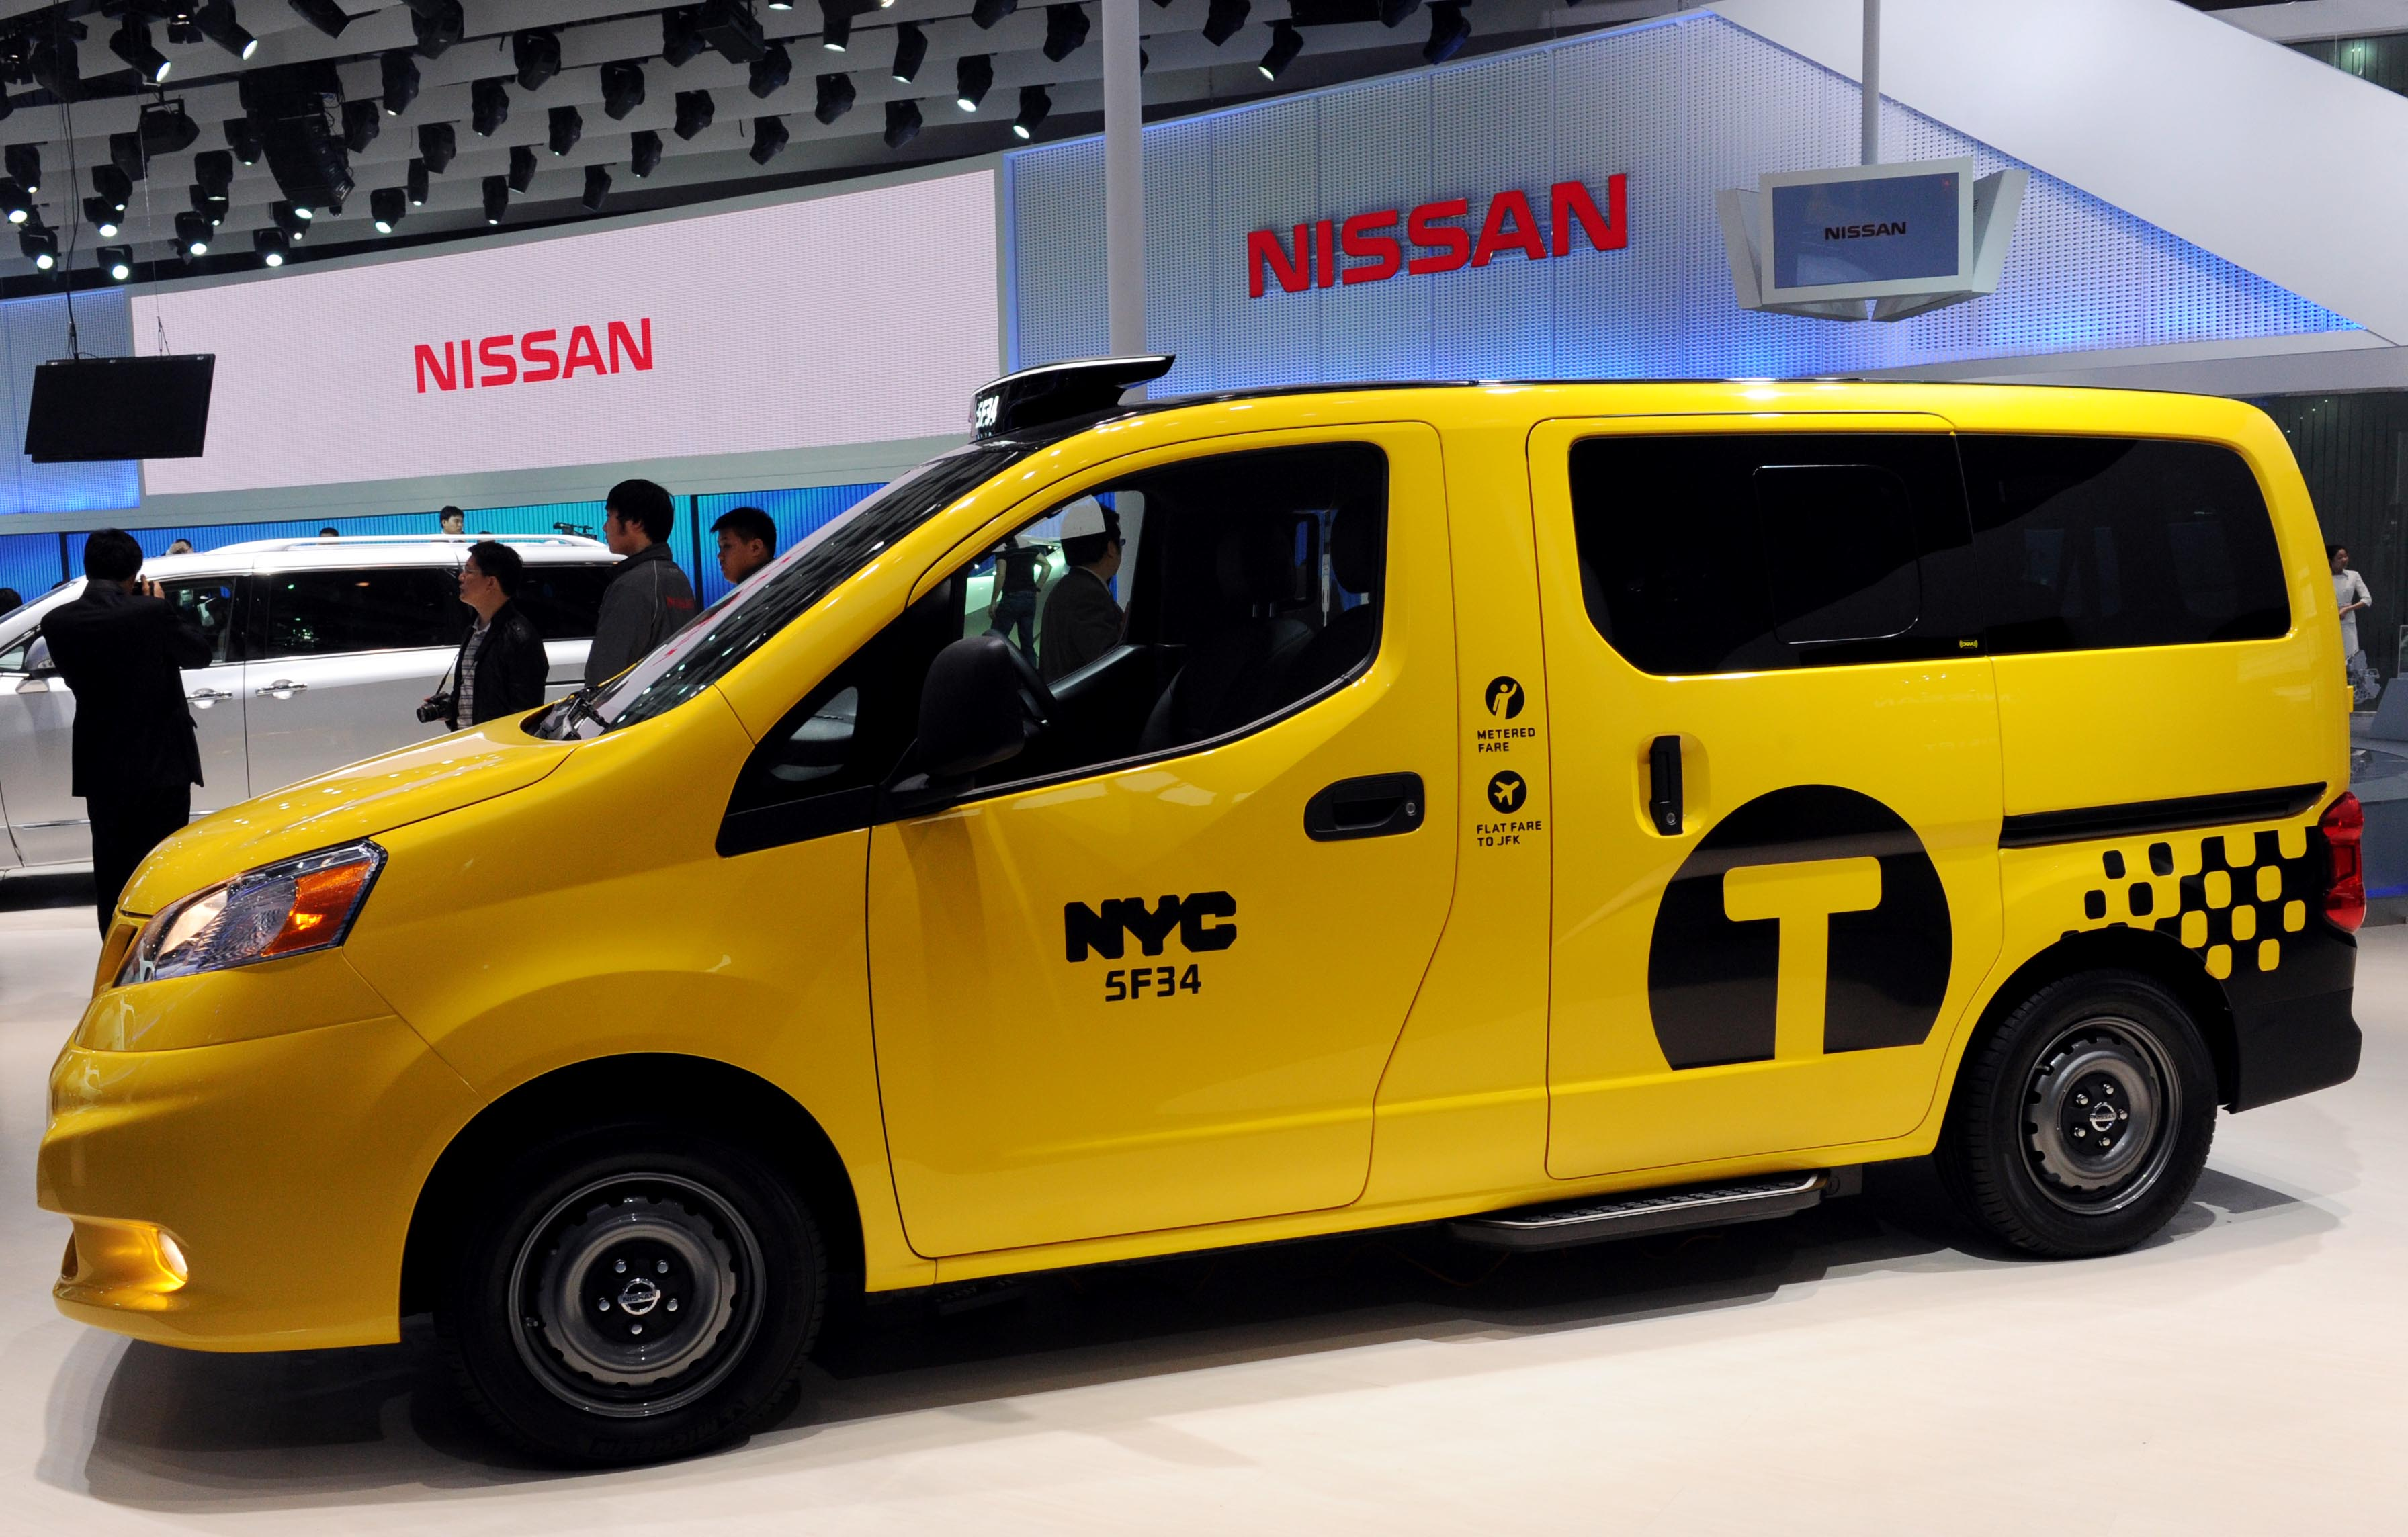 A Nissan NV200 vehicle is displayed during the 2012 Beijing International Automotive Exhibition at China International Exhibition Center on April 23, 2012 in Beijing, China.